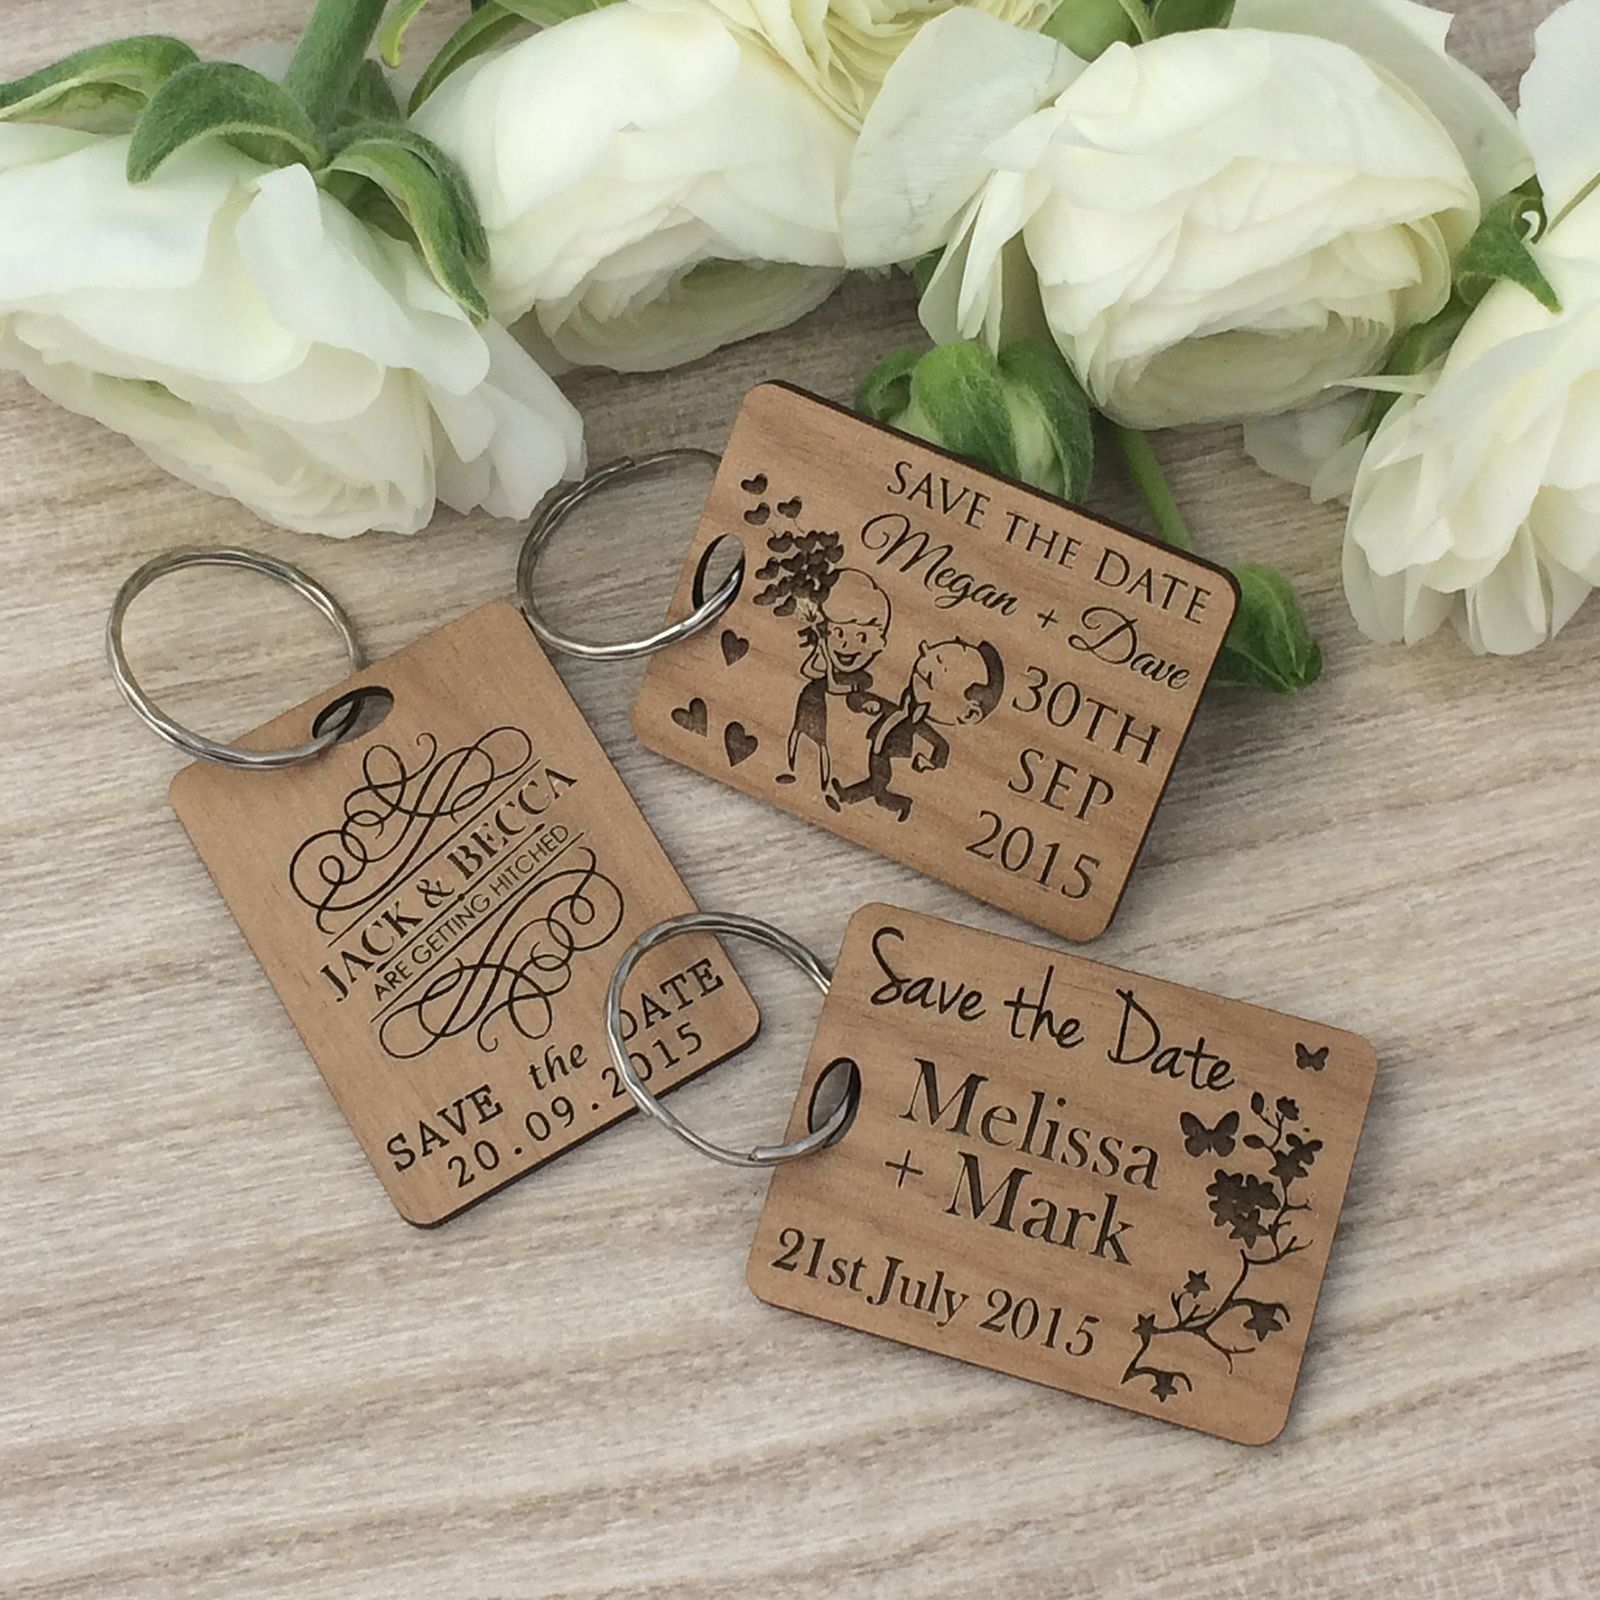 Onieres Wedding Favours Gifts